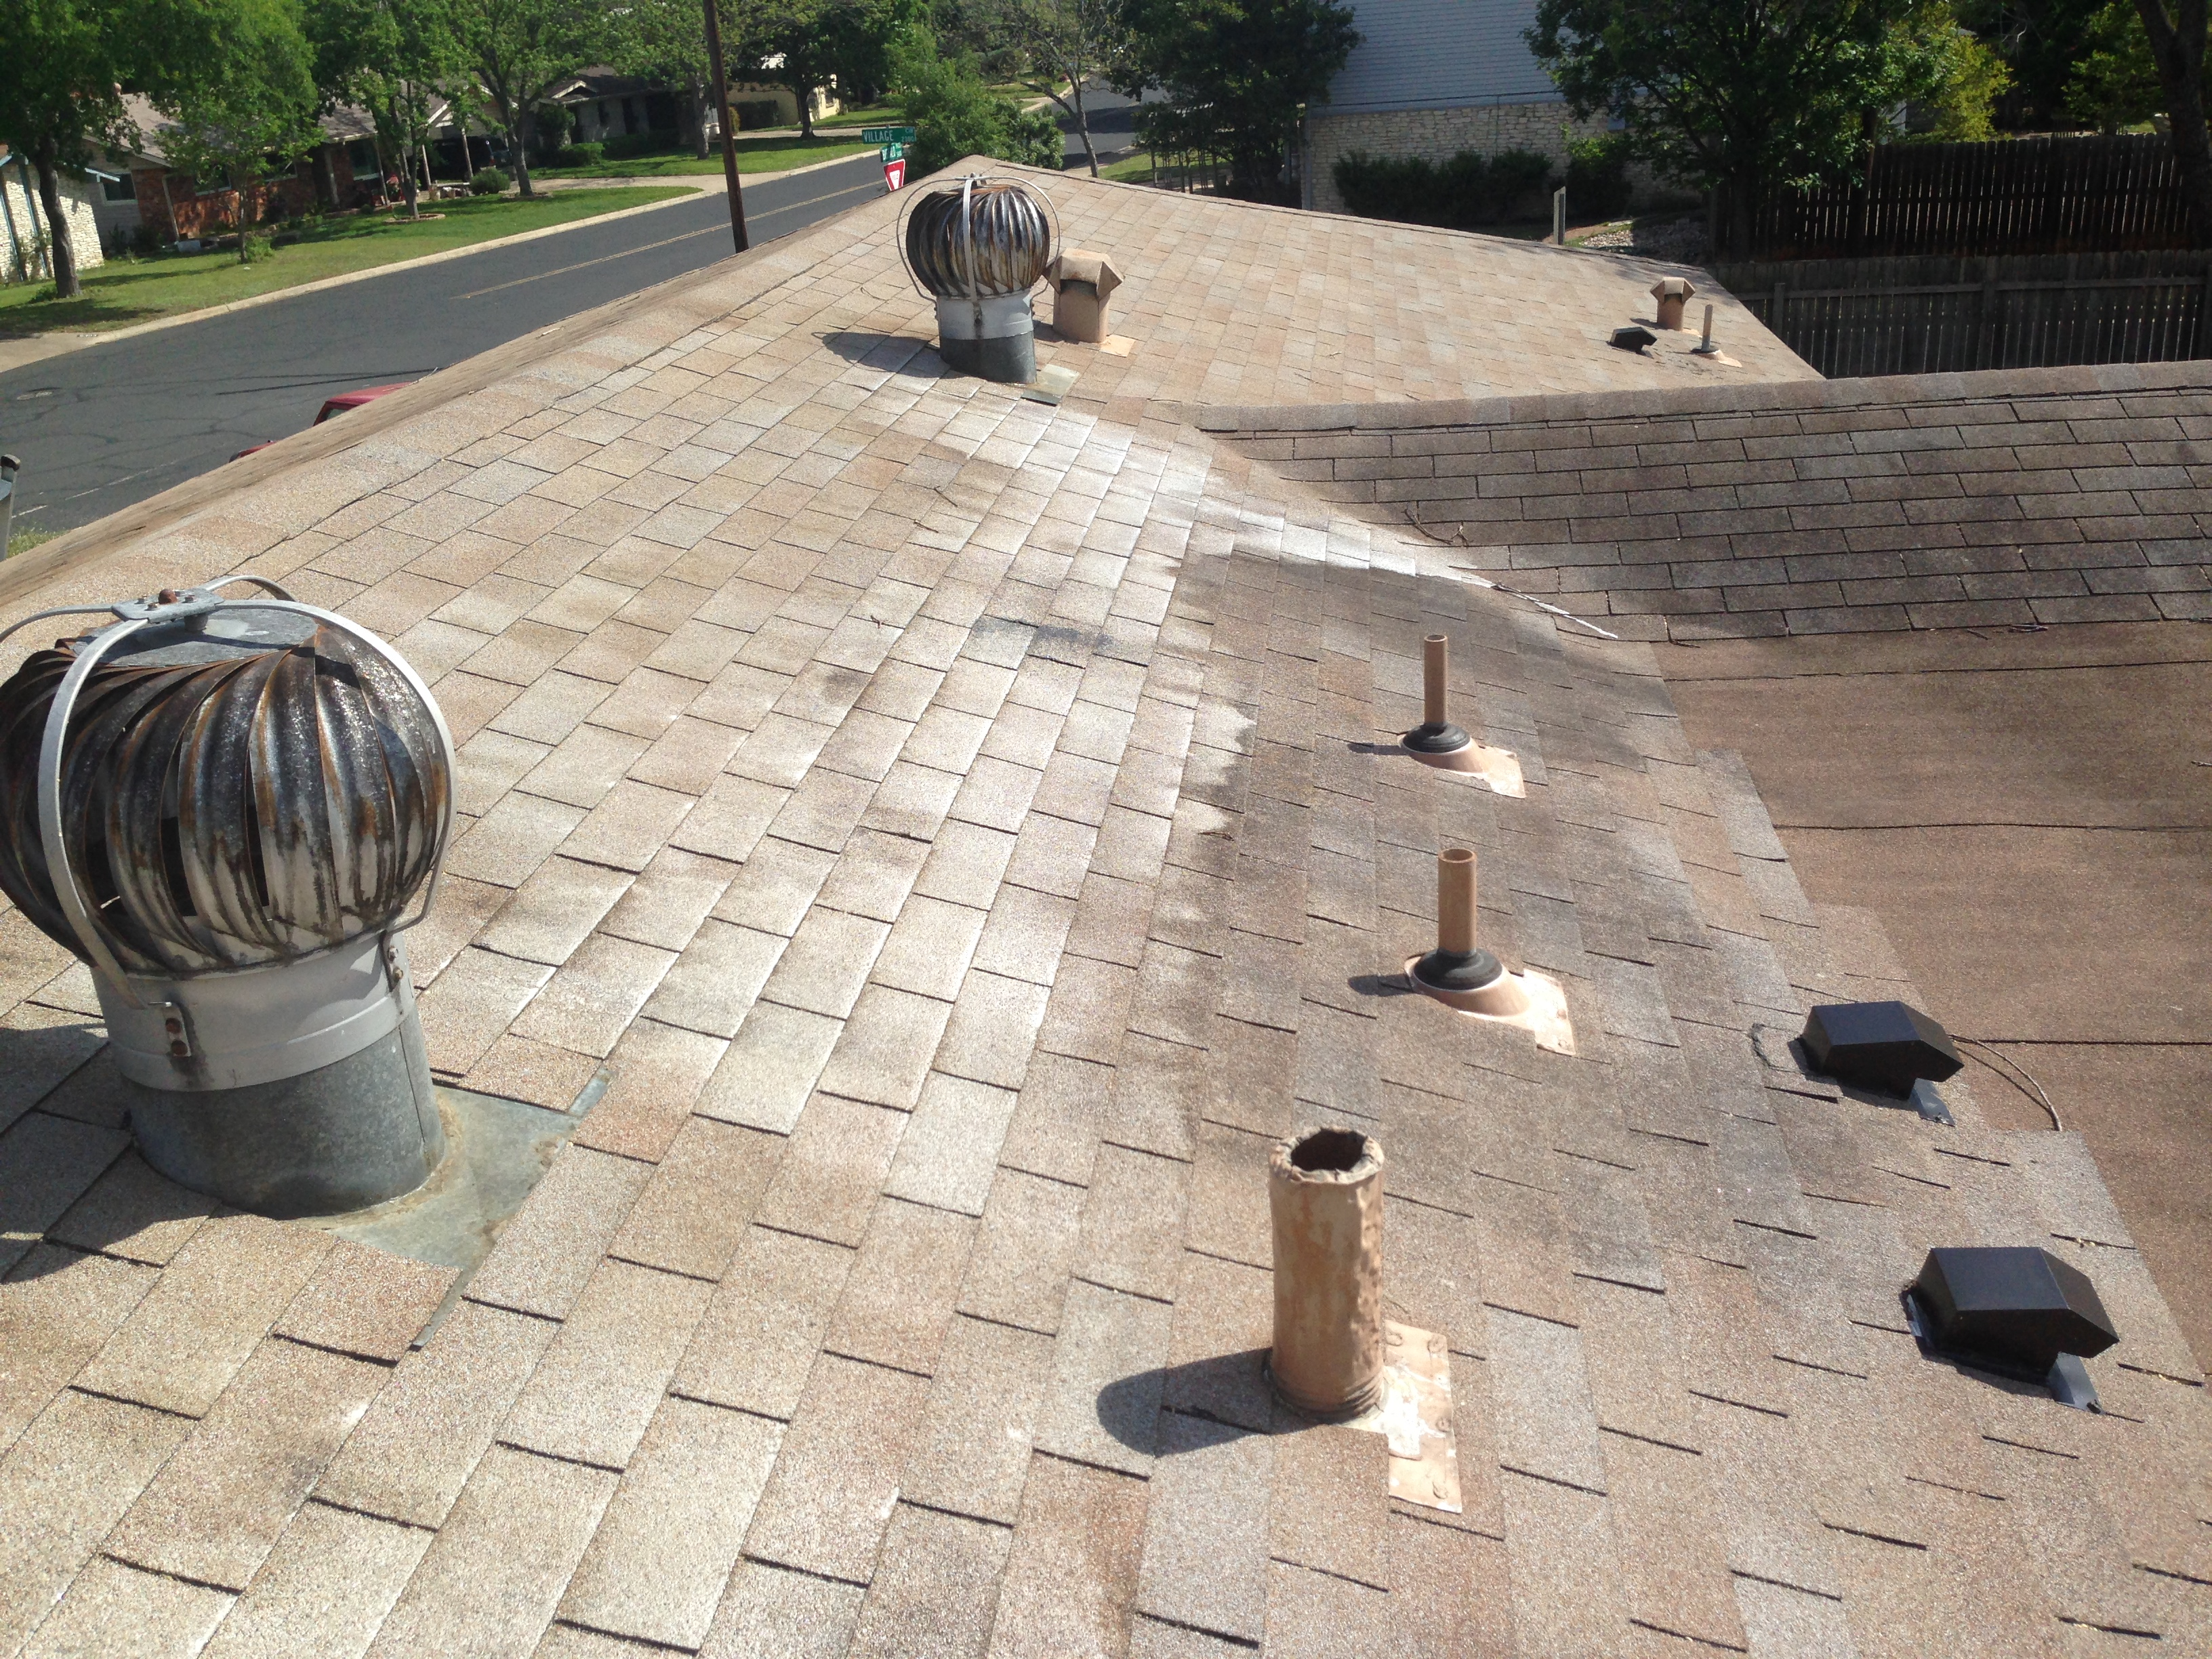 Shingle roof cleaning sparkling clean window company blog Sparkling image roof exterior cleaning